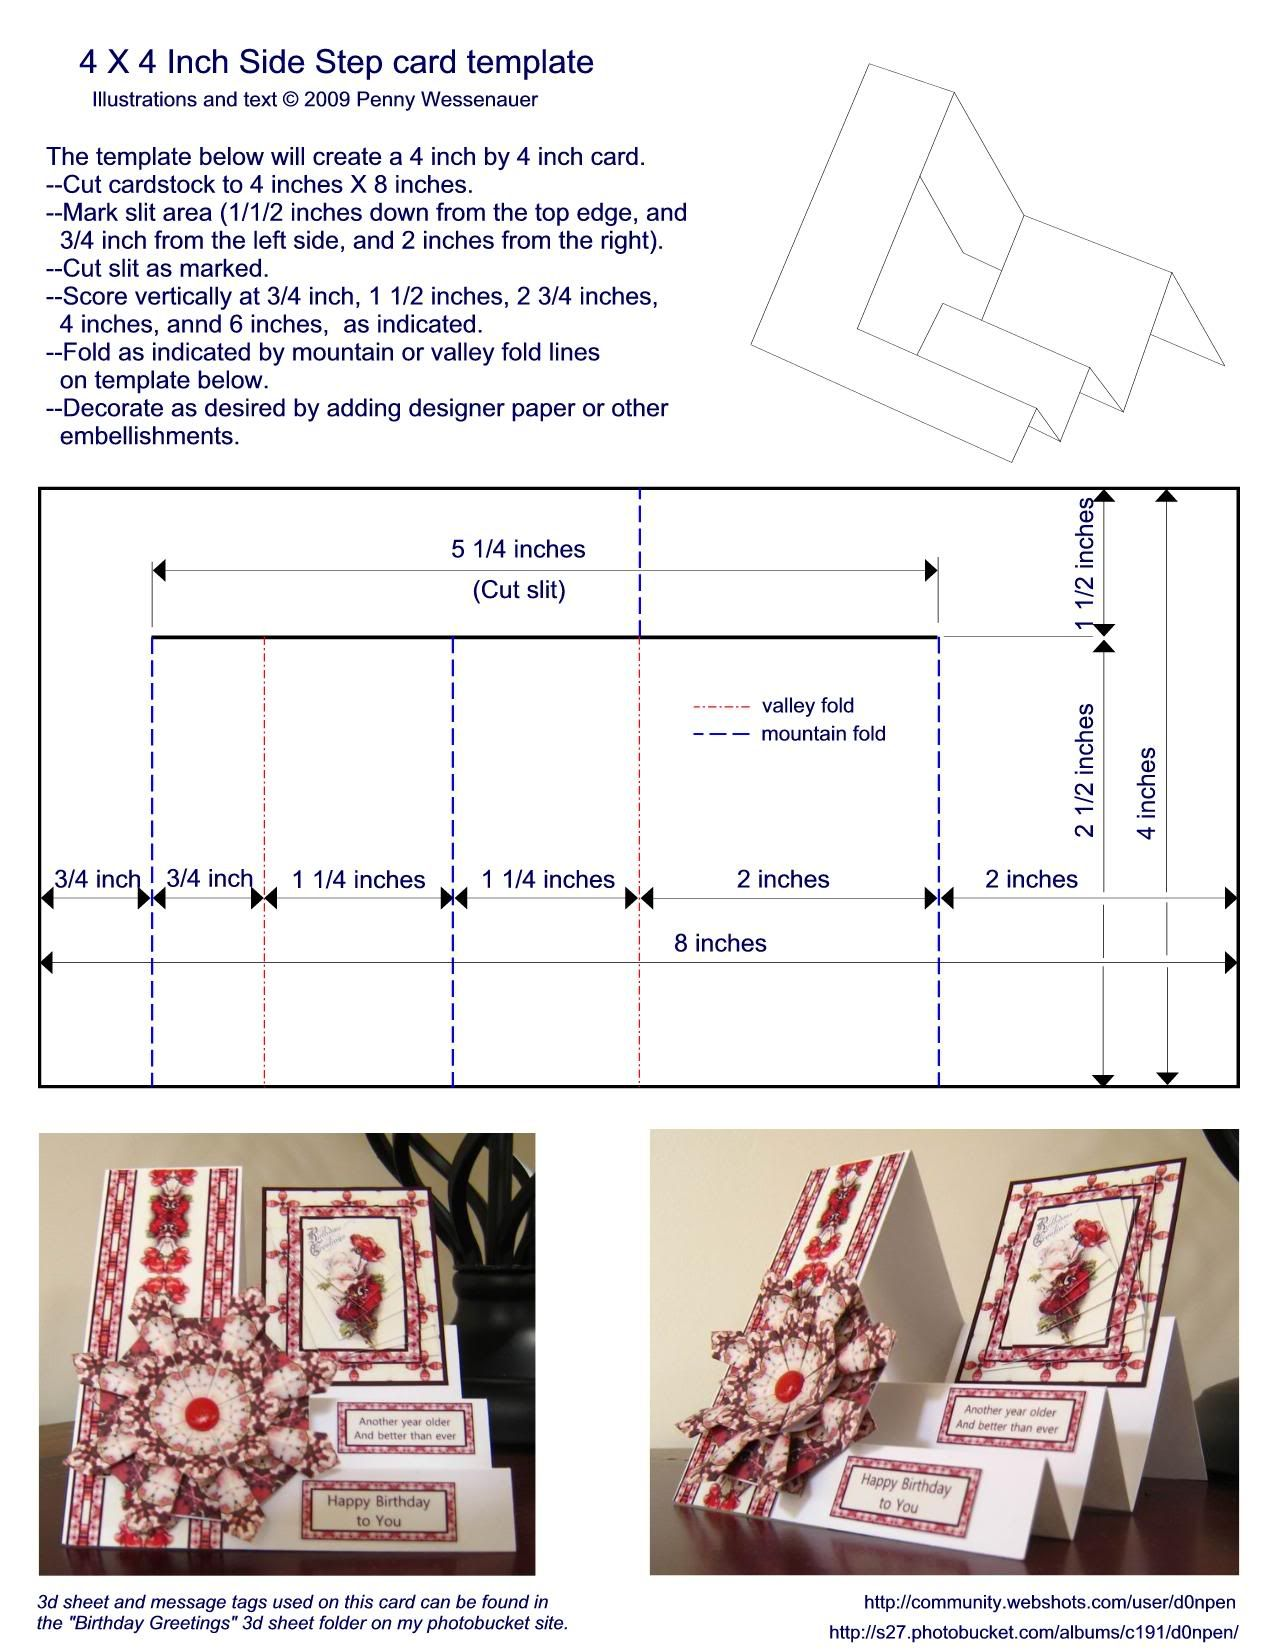 Cute 10 Envelope Template Indesign Huge 10 Steps To Creating A Resume Round 100 Day Plan Template 110 Block Label Template Youthful 18th Invitation Templates Red2 Month Calendar Template 4 X 4 Pop Out Frame Card Photo: This Photo Was Uploaded By D0npen ..